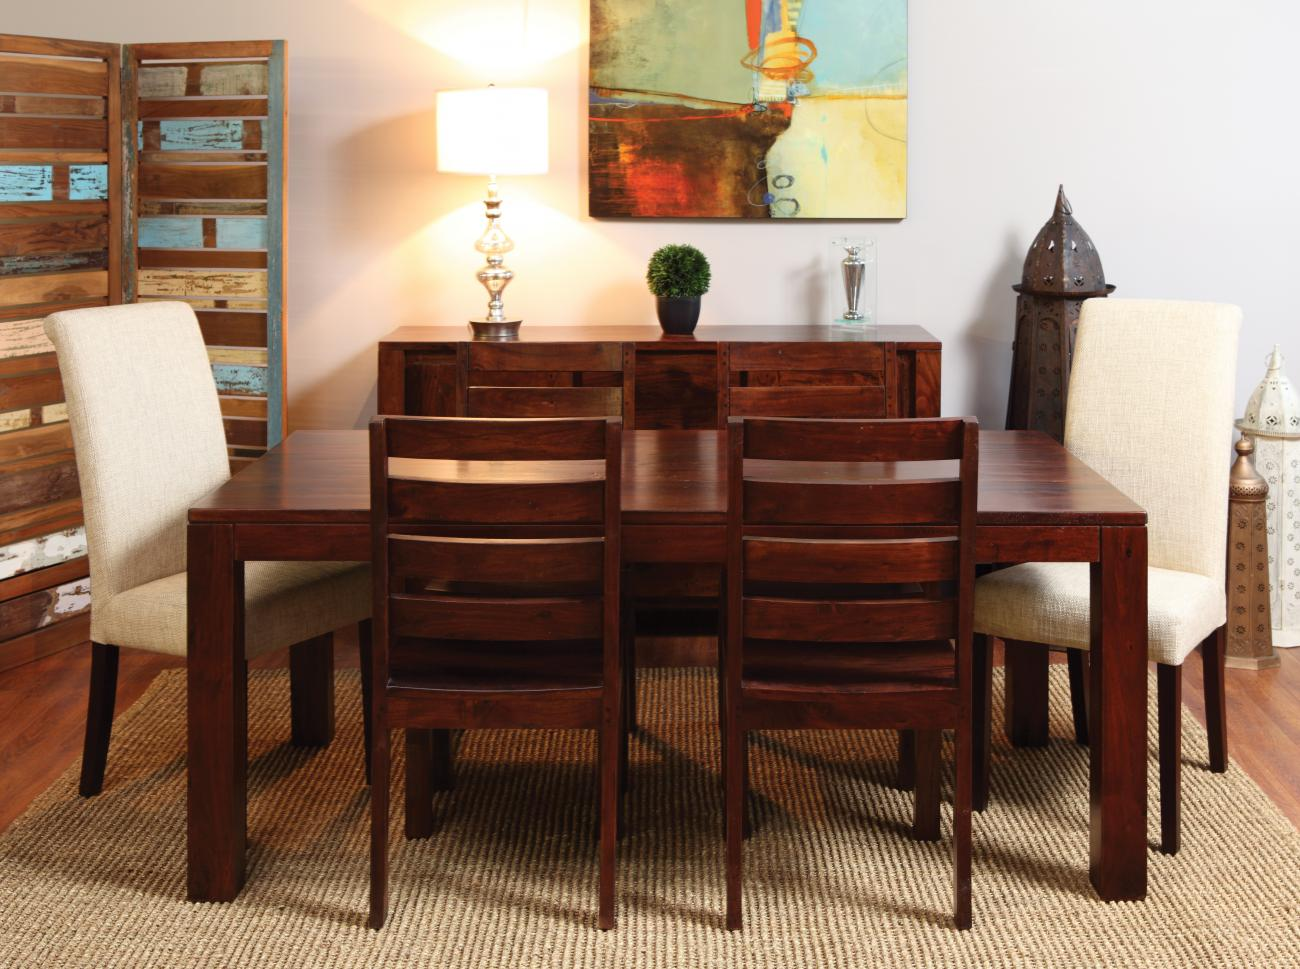 Modern Dining Table 4 Wooden Chairs U0026 2 Cloth Chairs